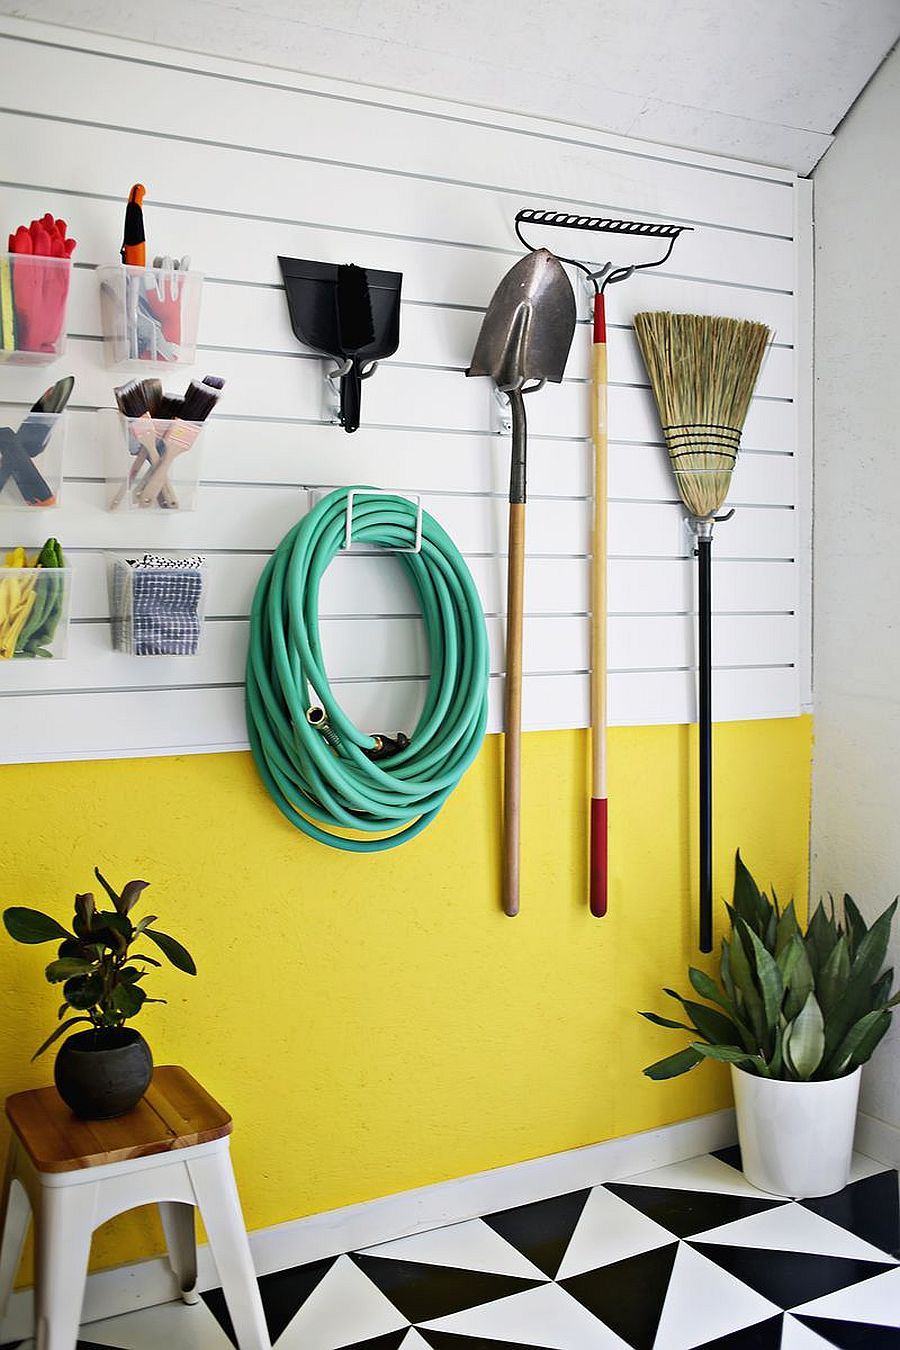 1562676627 581 25 garage organization tips and diy projects - 25 Garage Organization Tips and DIY Projects